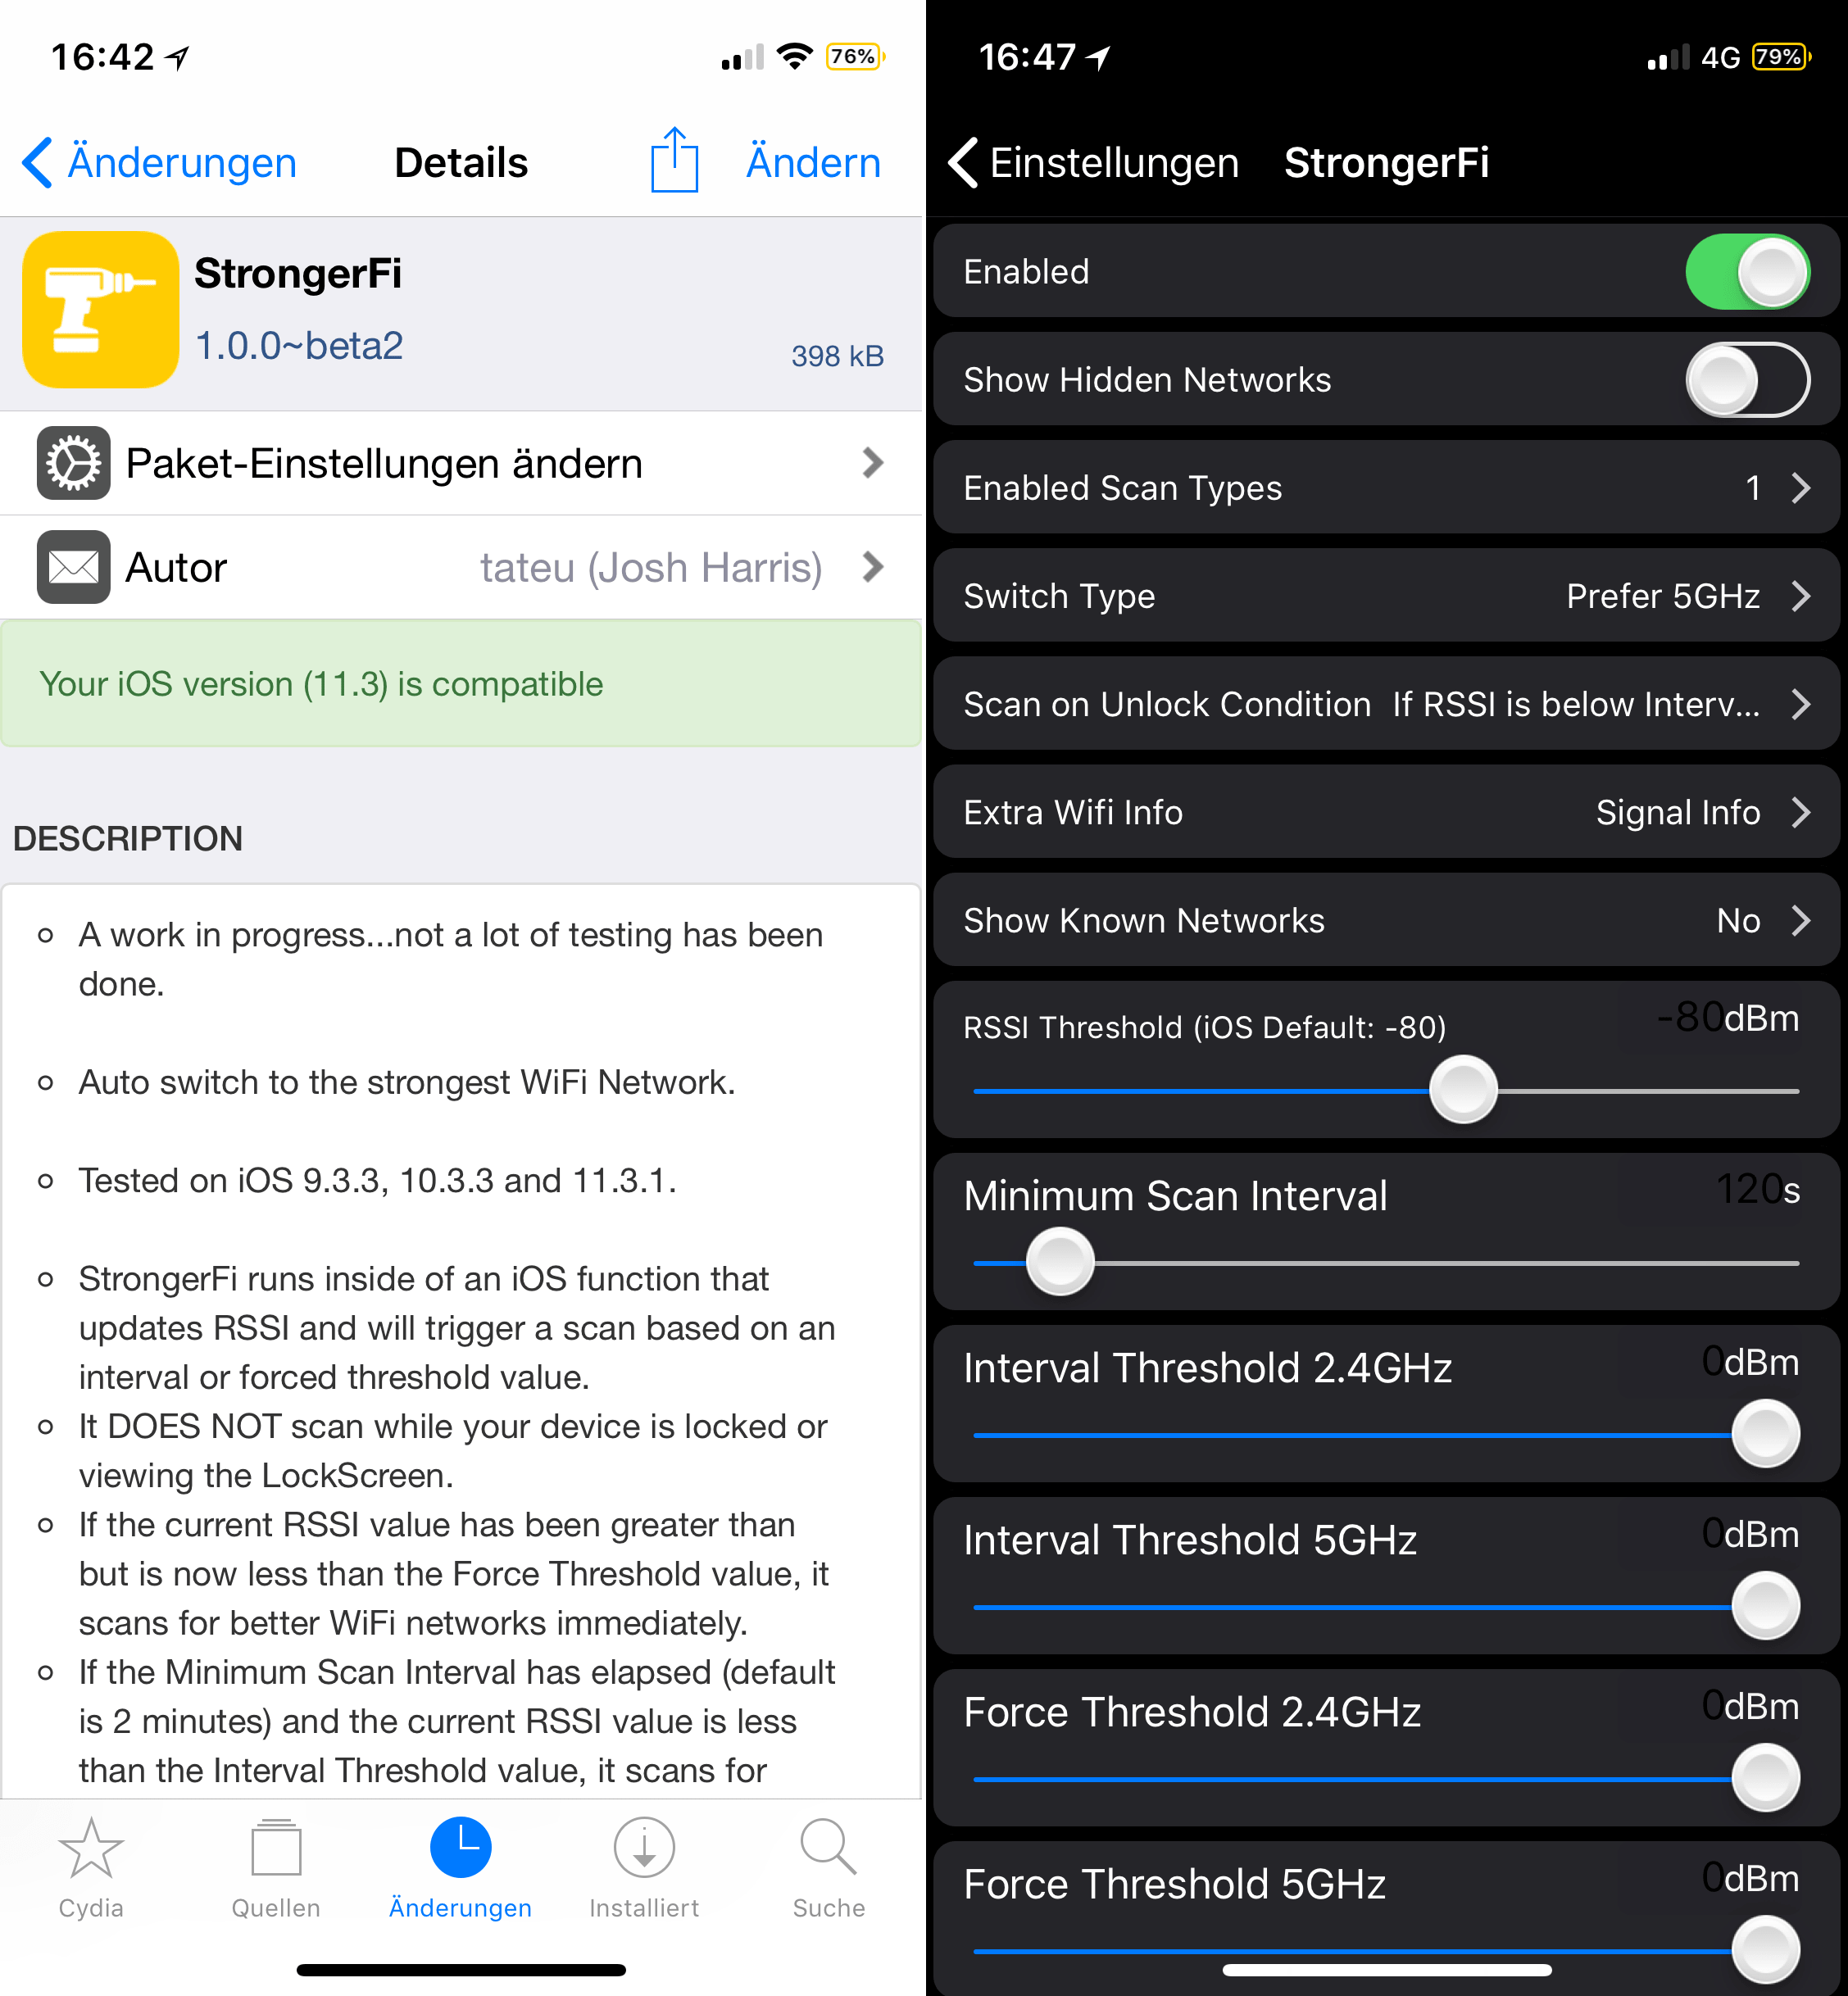 Automatically connect to the strongest Wi-Fi, StrongerFi, Cydia, Tweak, Sileo, iOS 11, help, configuration, options, explanation, Hack4Life, Fabian Geissler, Download, Free, Hack, tip, .deb